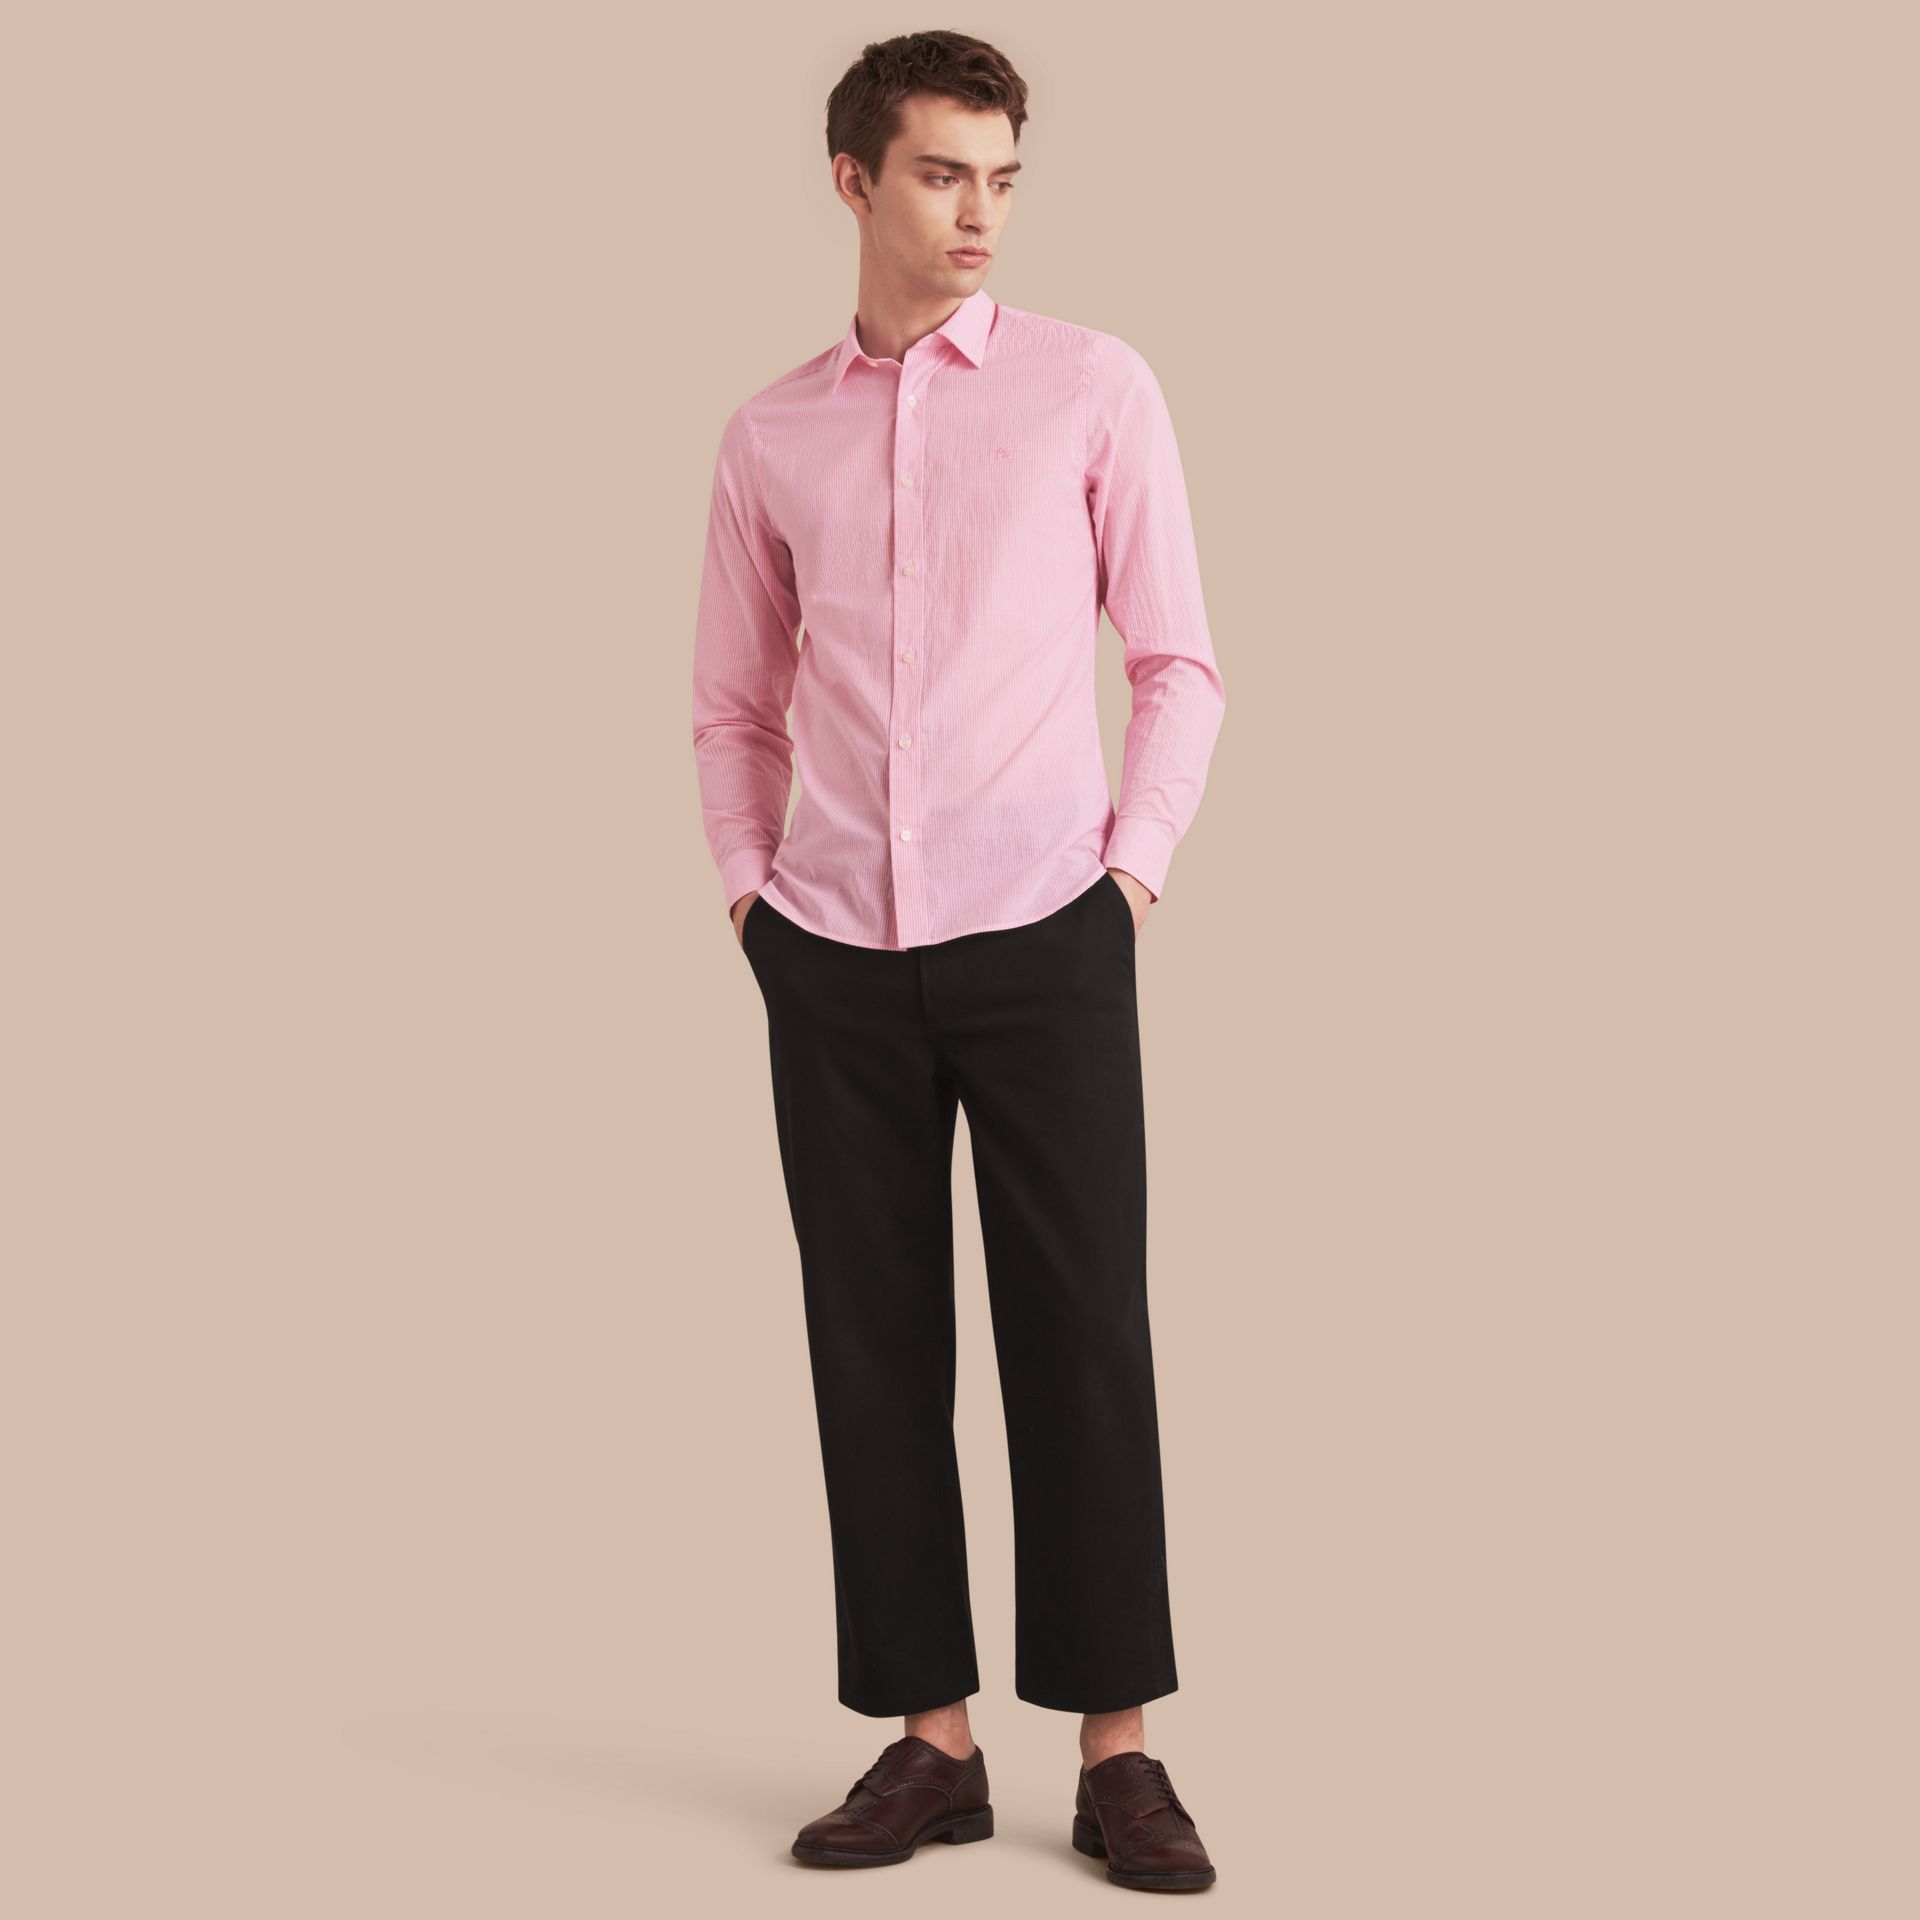 Striped Cotton Blend Shirt in Pale Pink - Men | Burberry - gallery image 1